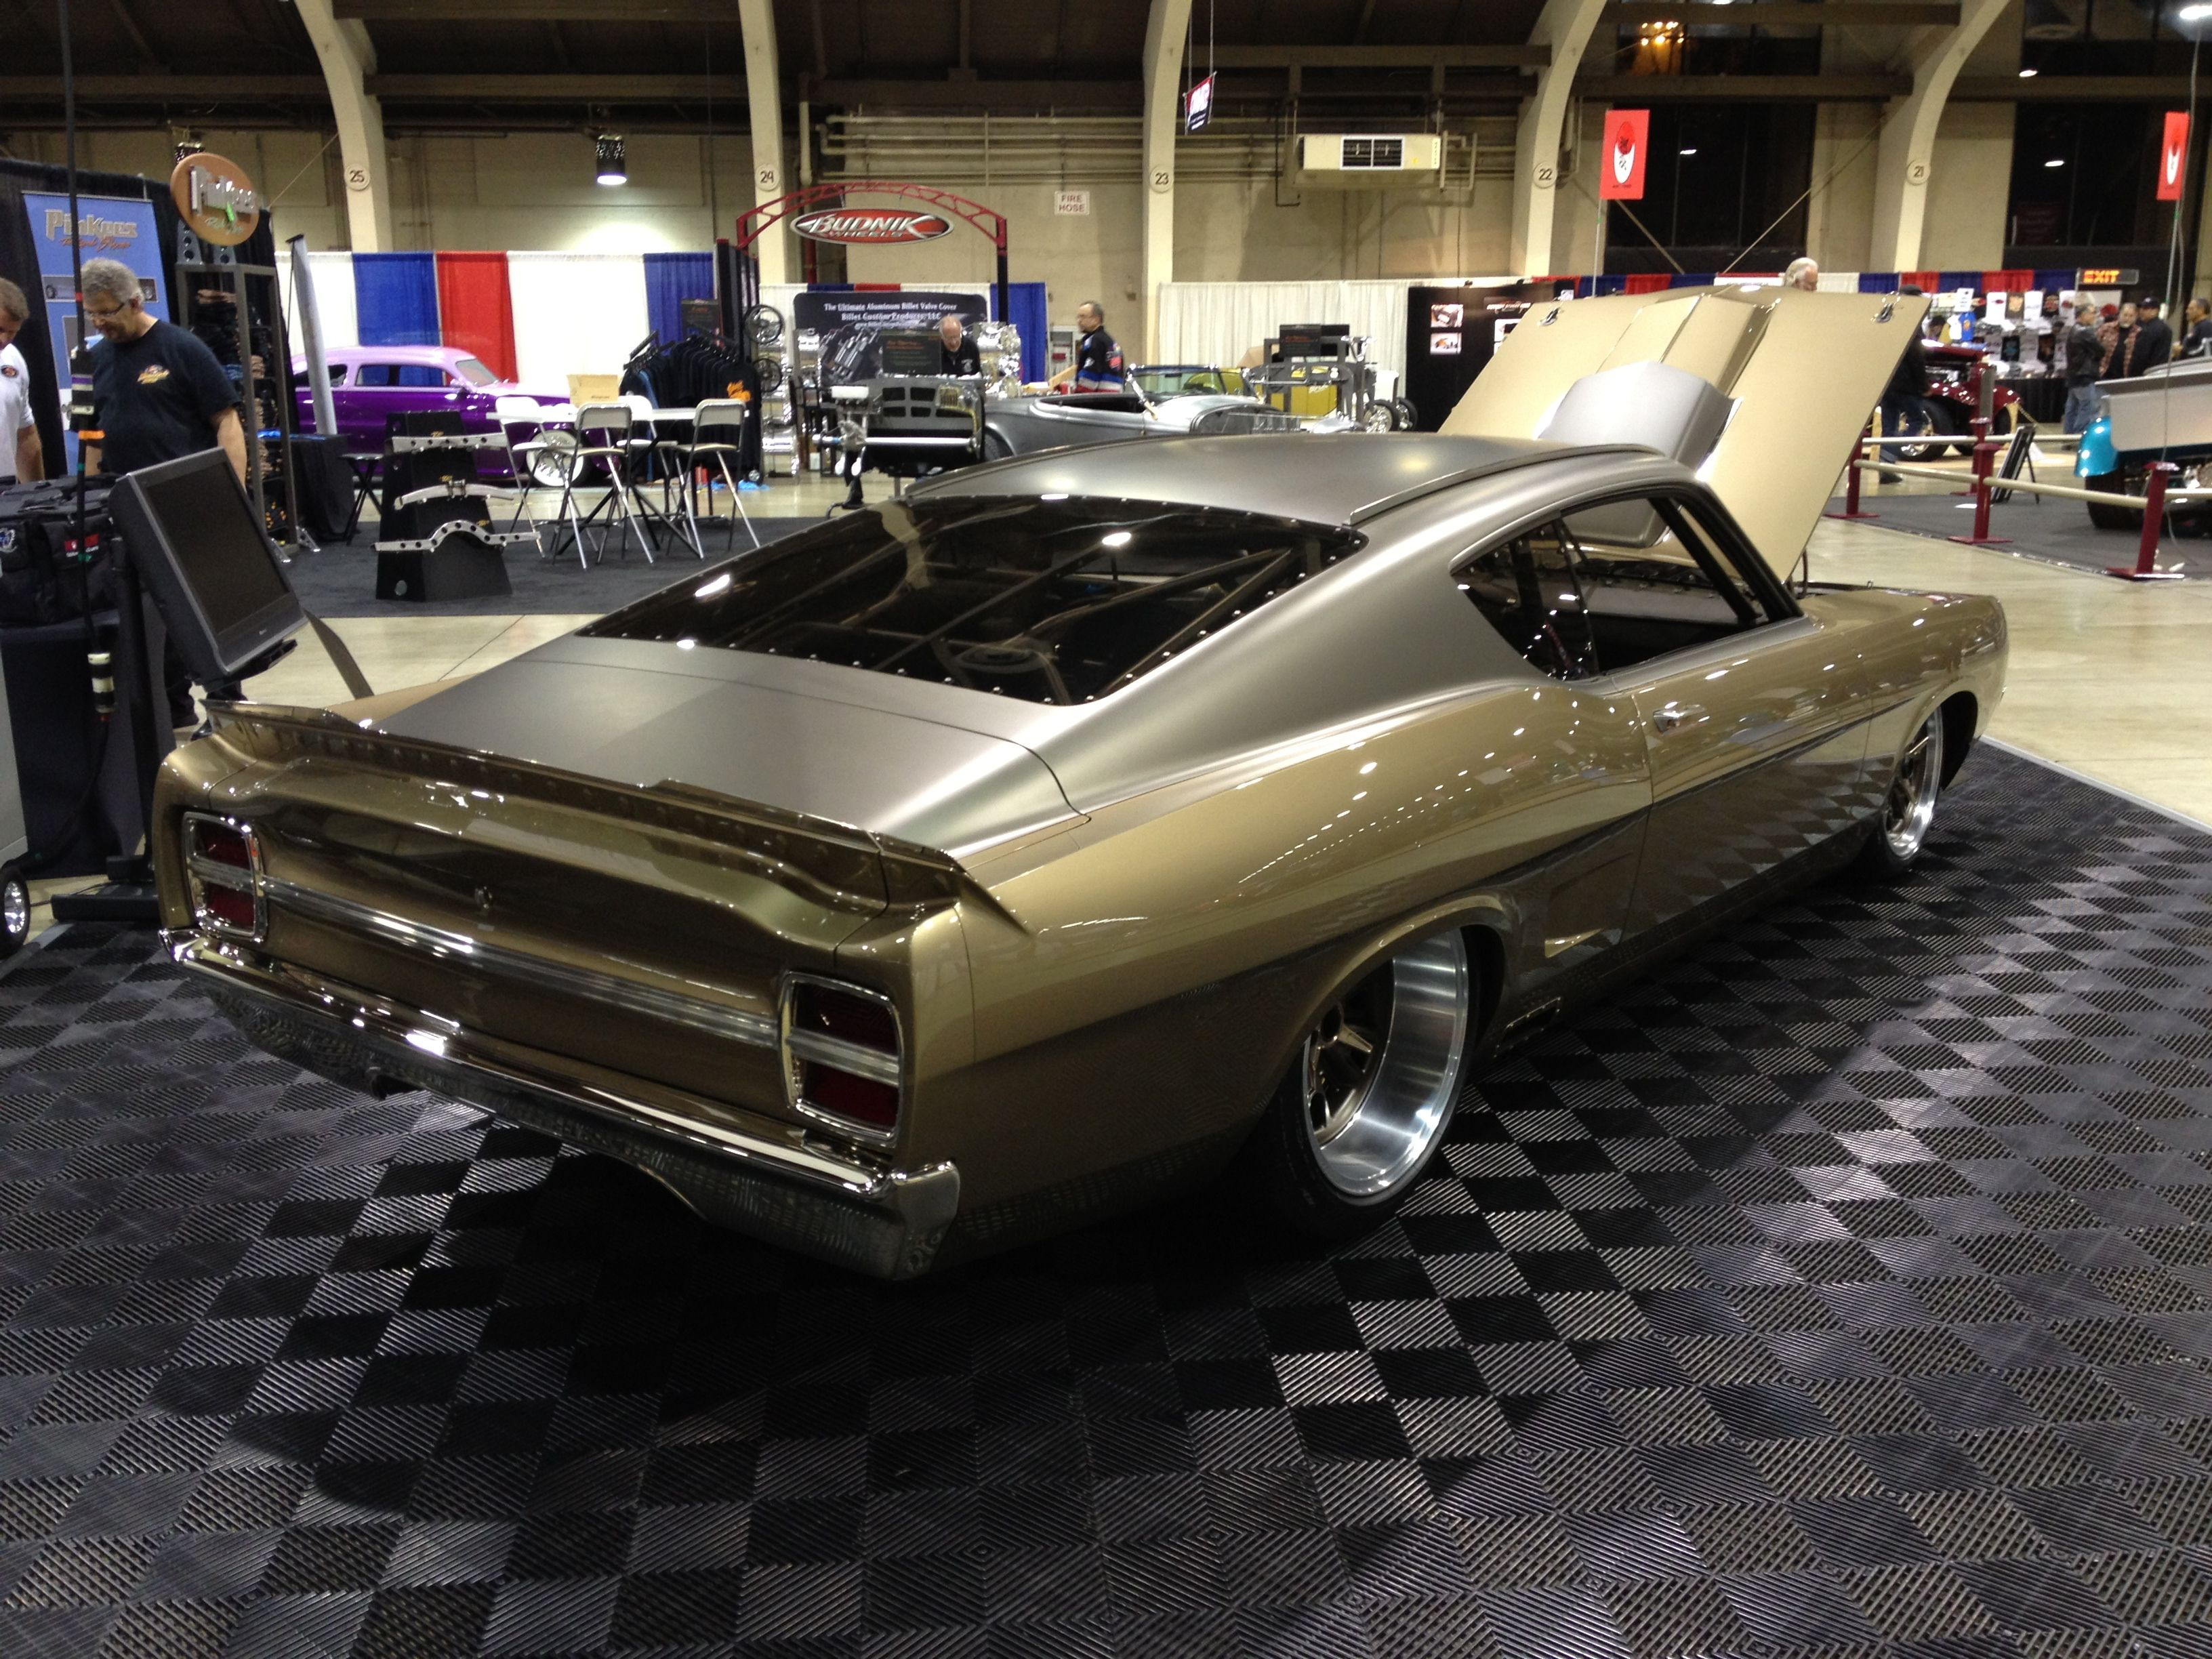 Rad Rides by Troy - Torino back view | Cars & Motorcycles ...